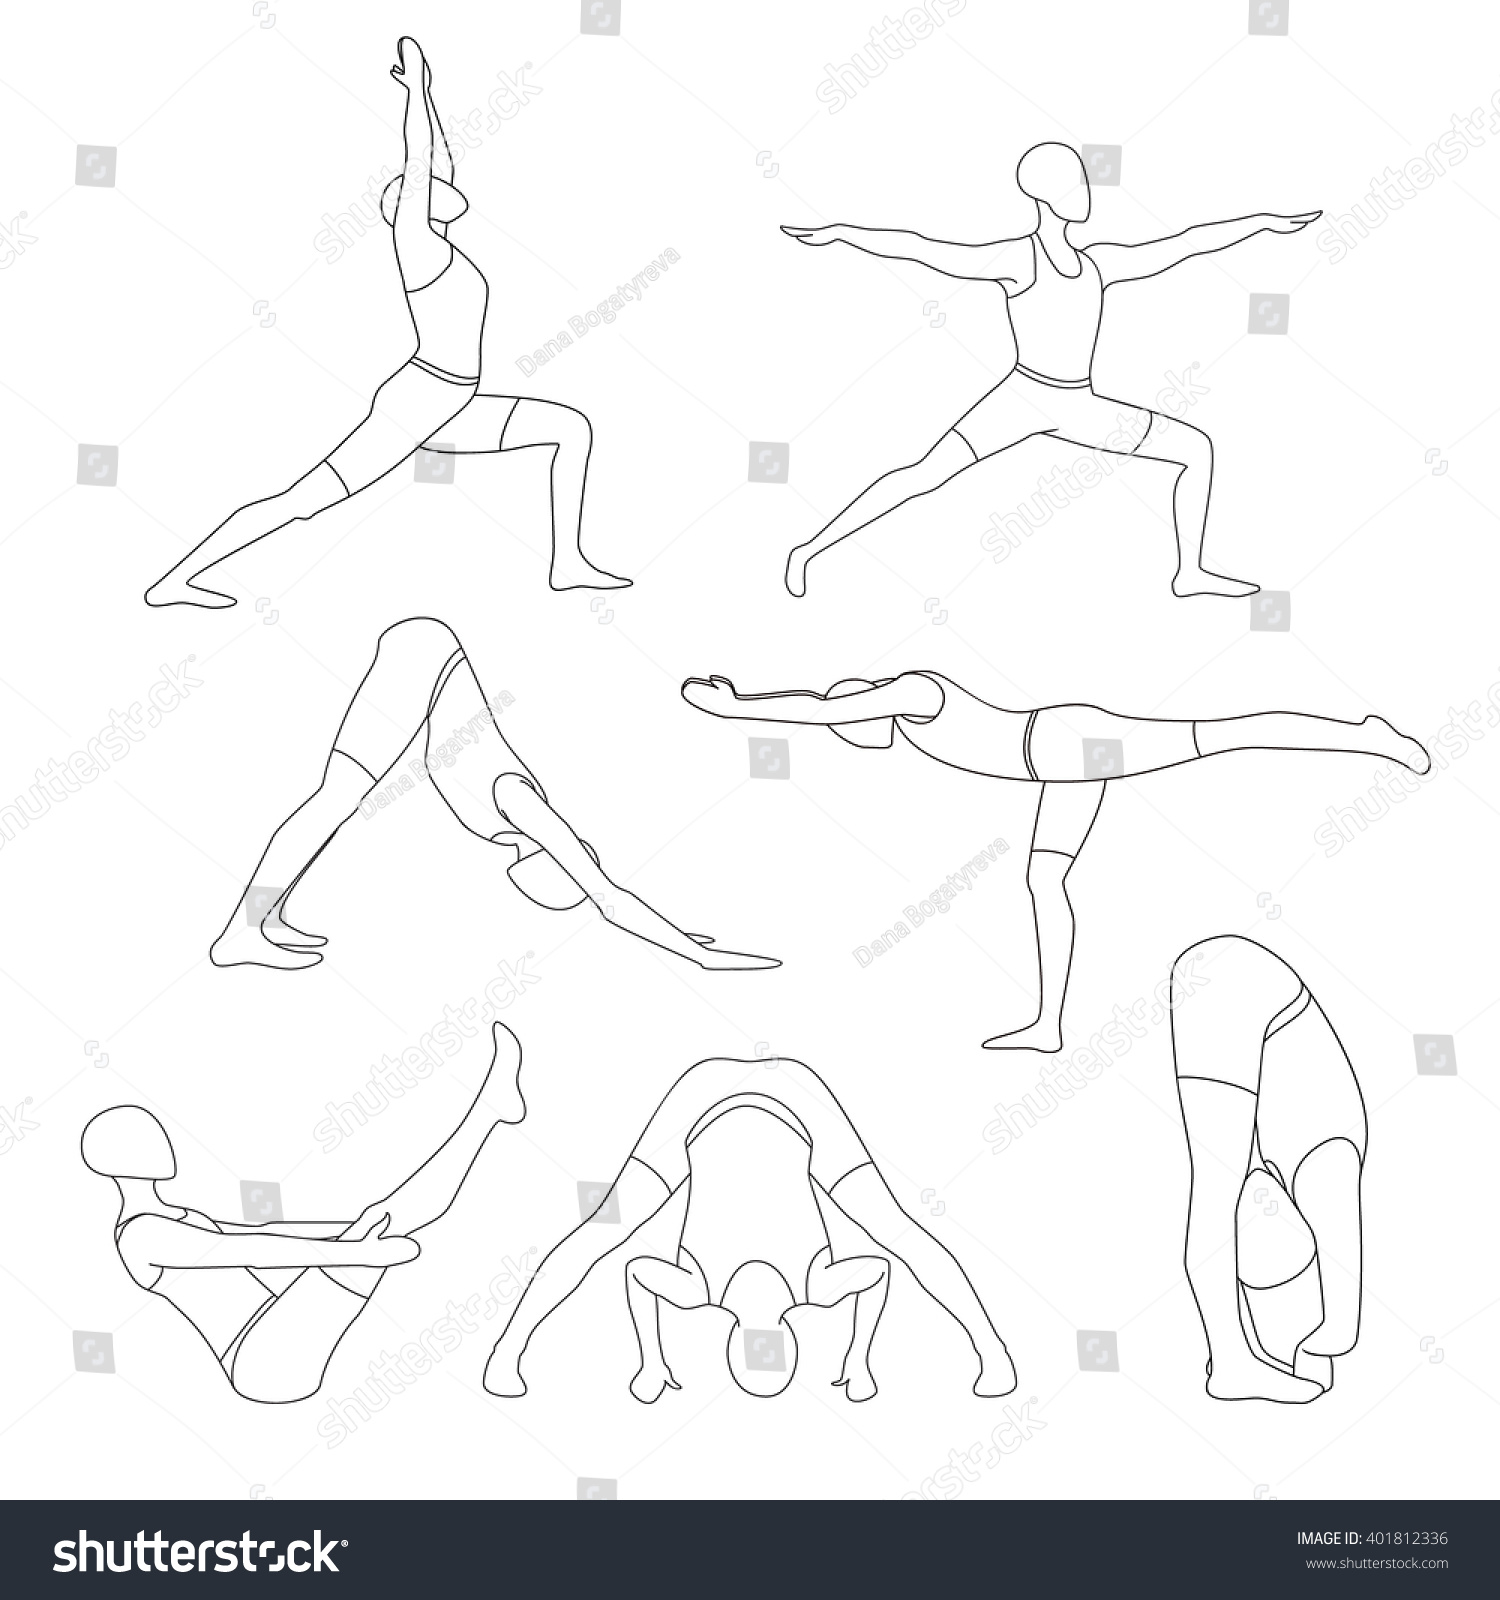 Line Drawing Yoga Pose : Set of seven yoga poses human doing line art